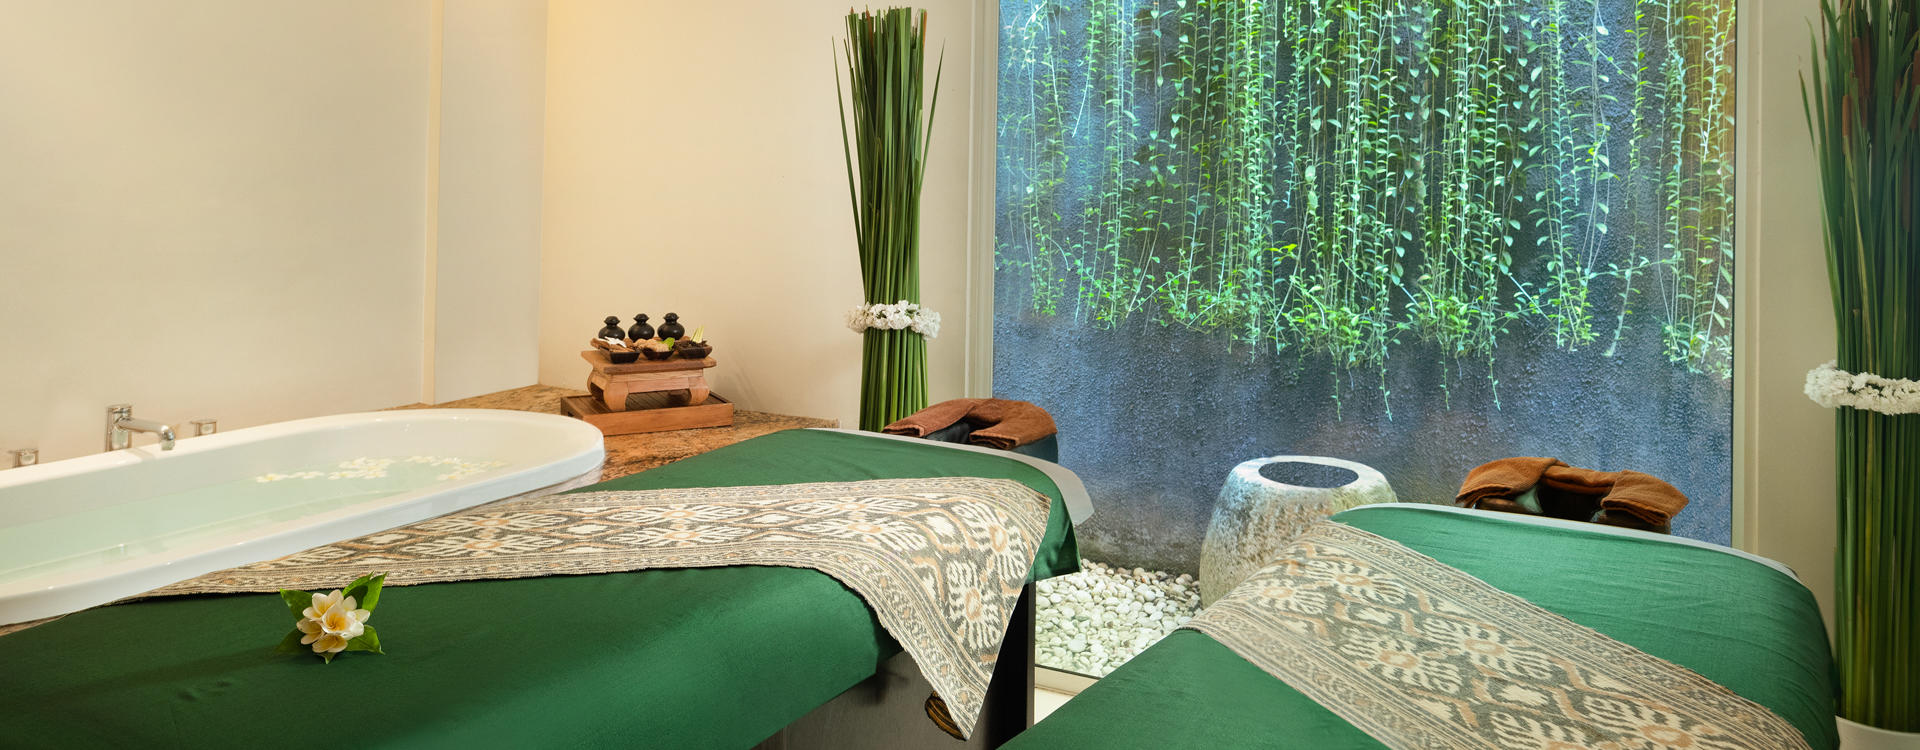 LE3 - Balinese Message at Hideaway Spa